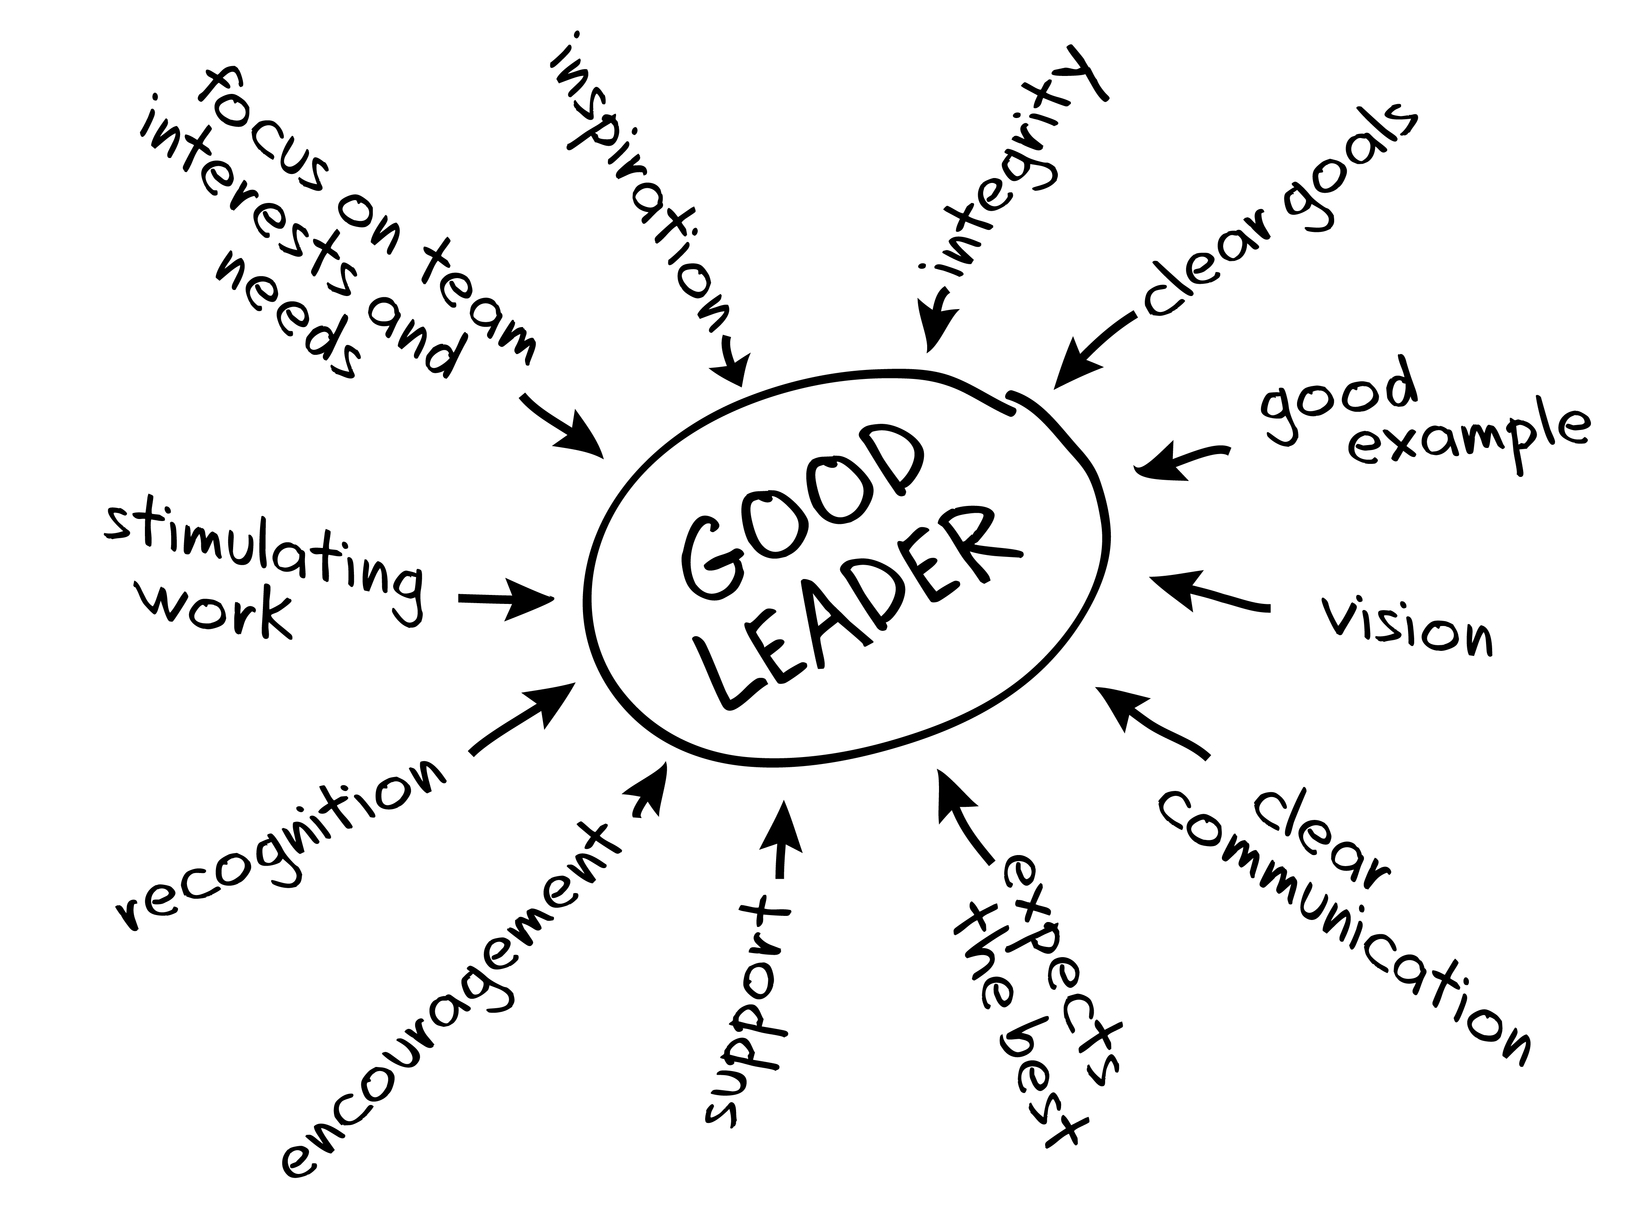 Image Credit: Blocks Of Leadership